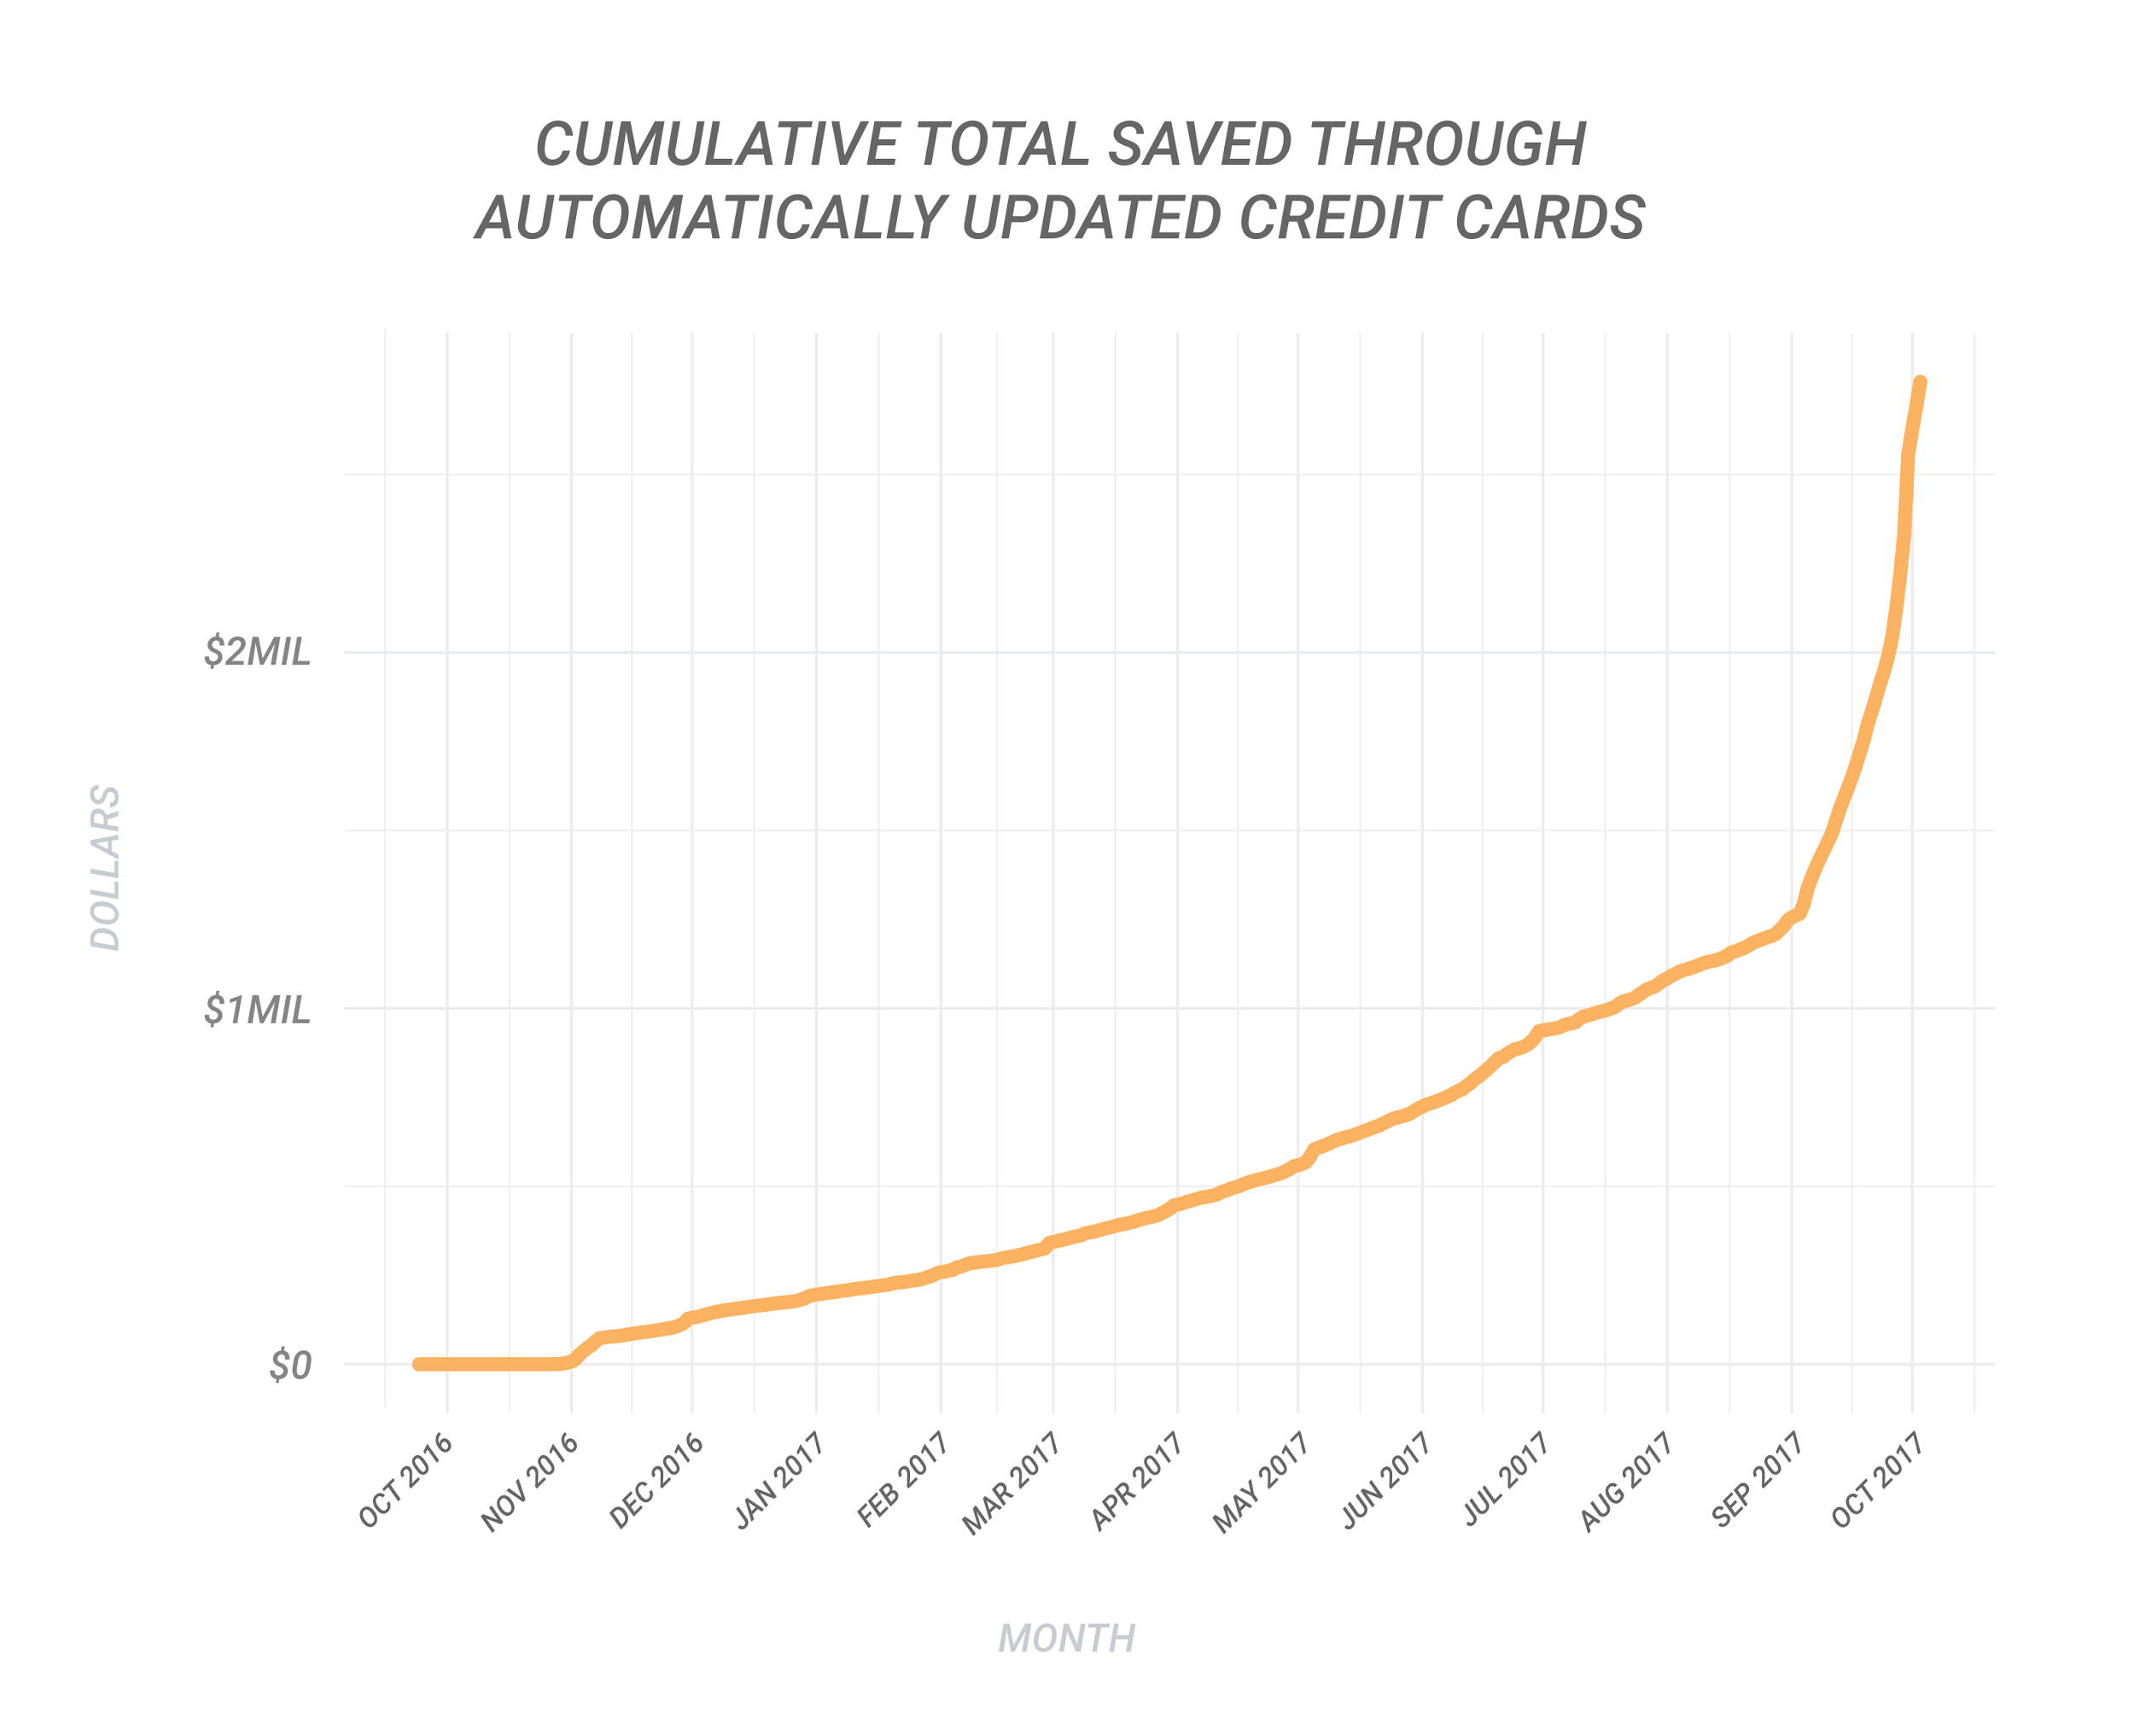 Cumulative Total Saved Through Automatically Updated Credit Cards